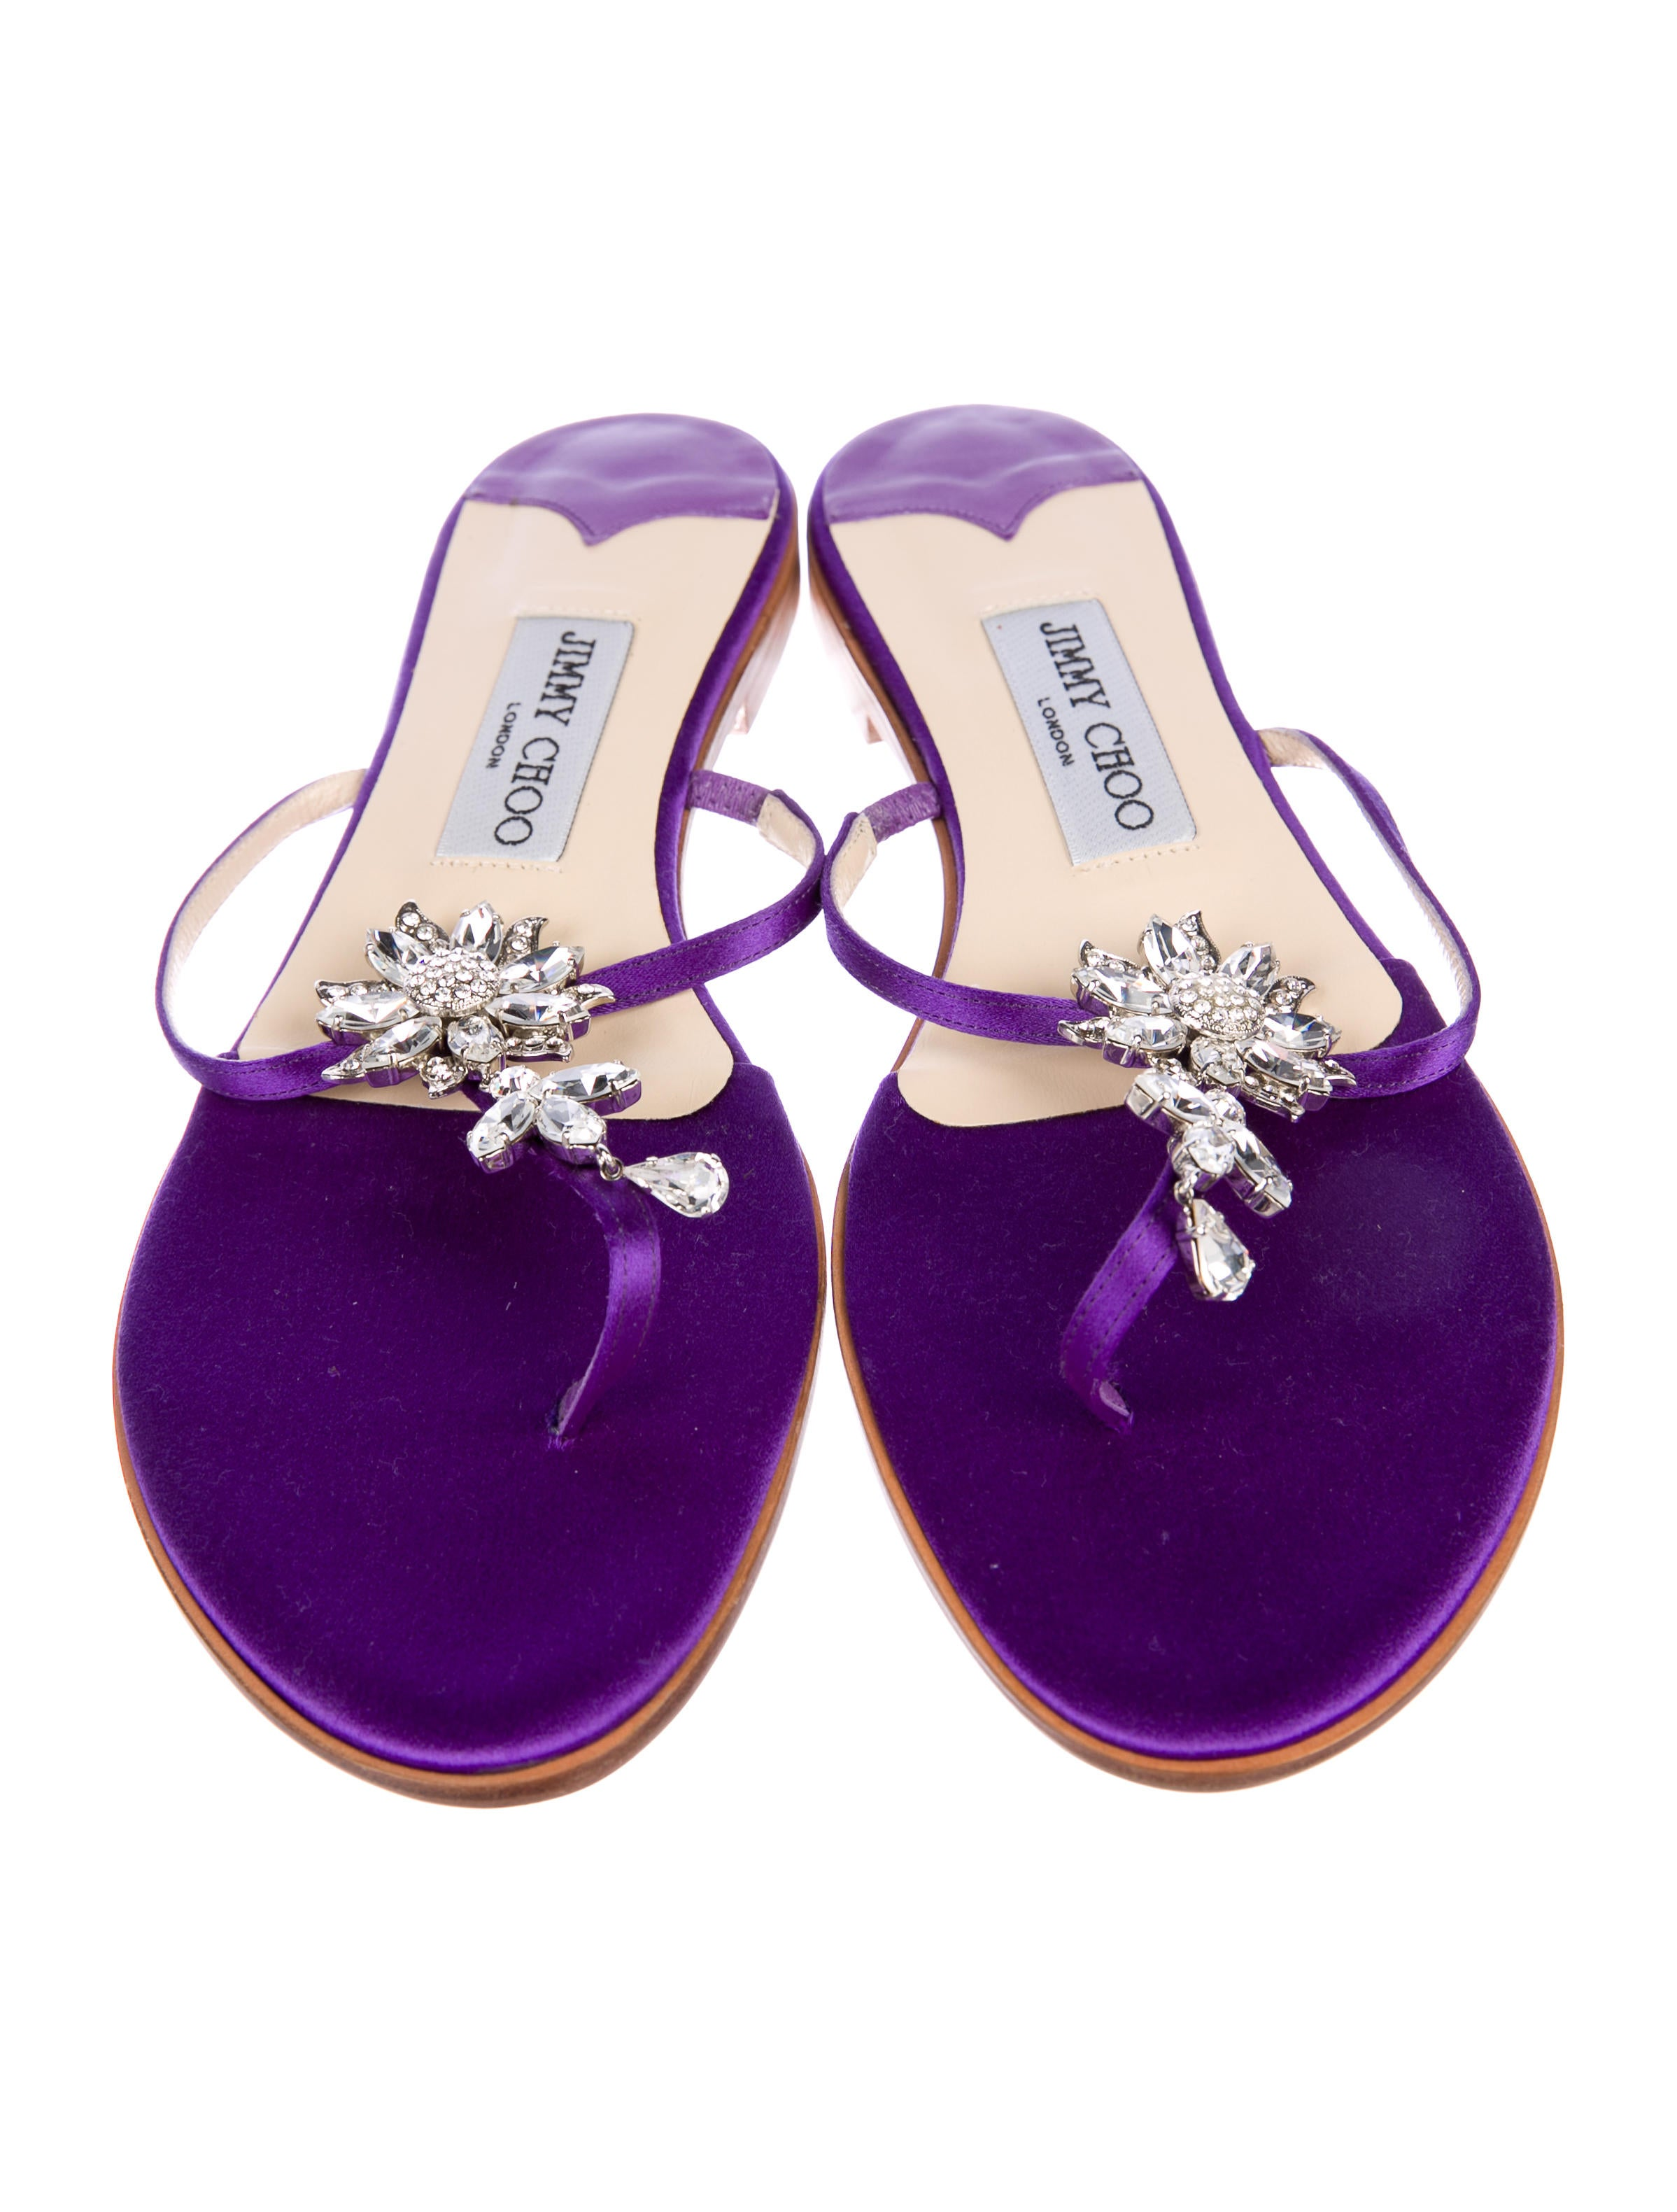 free shipping manchester great sale for sale online Jimmy Choo Cynthia Crystal Thong Sandals w/ Tags discount collections cheap order free shipping order 94XeAmoo9j